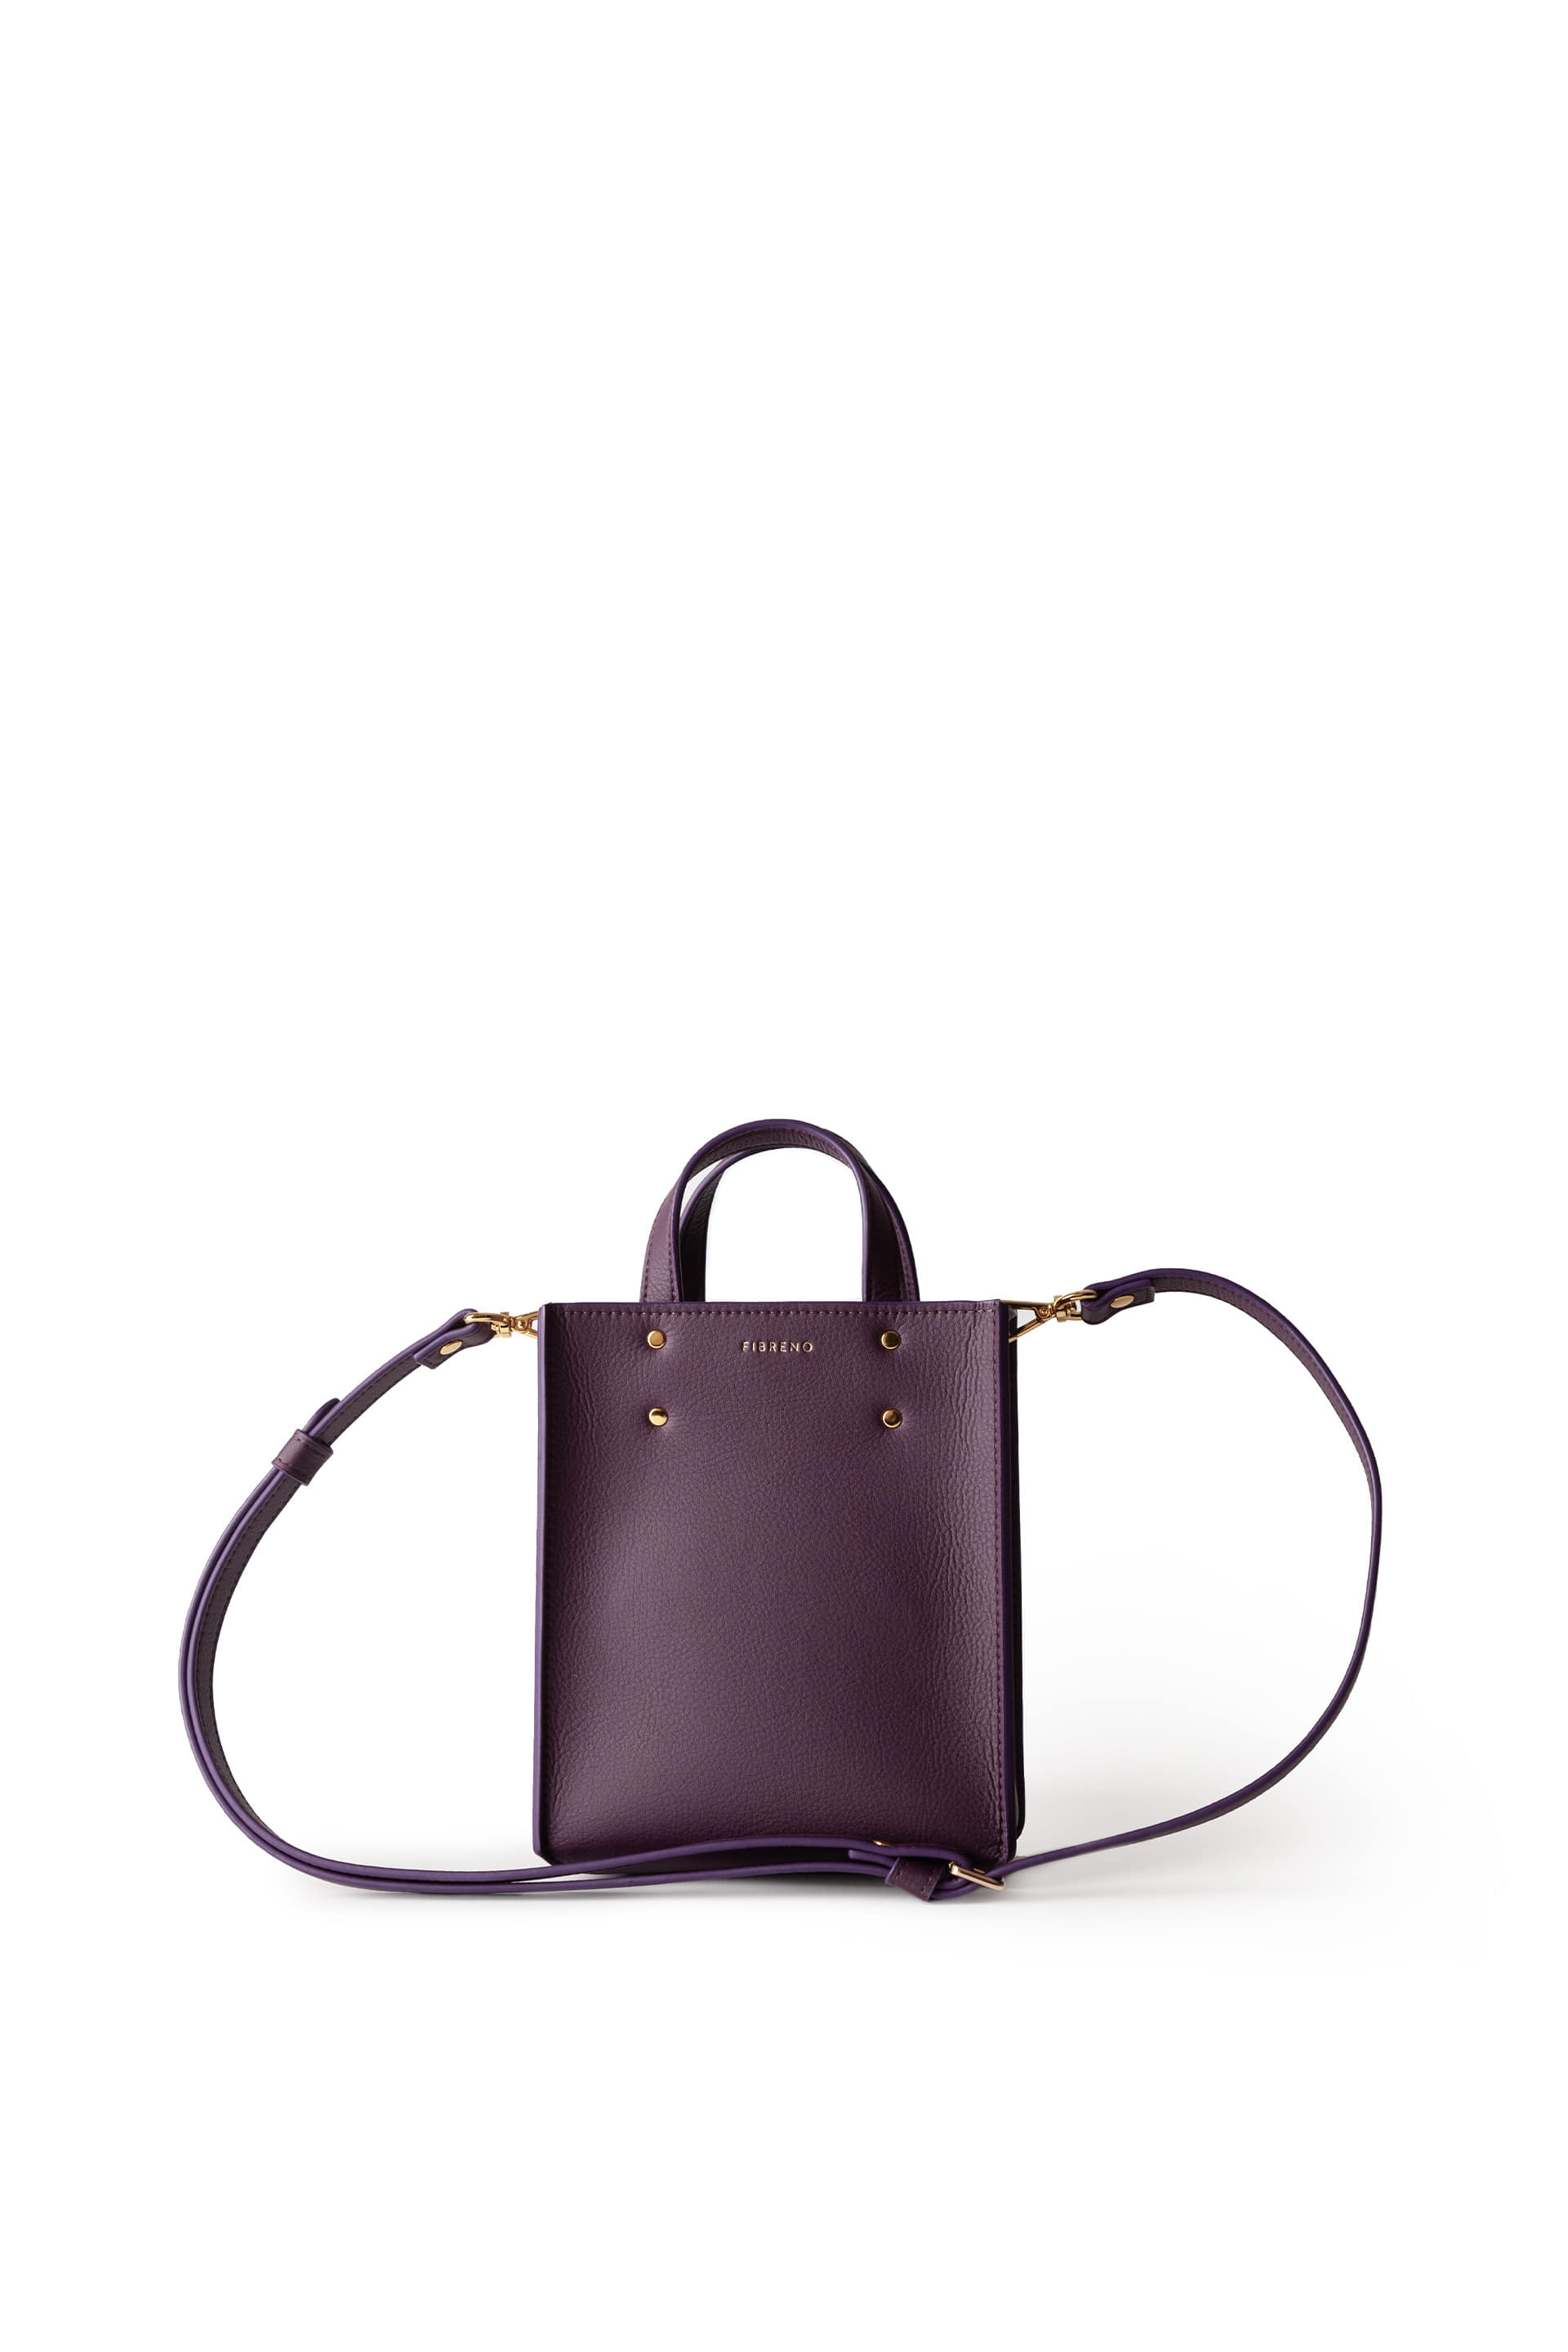 BABY MINI BAG 18 Purple 149,000 > 129,000